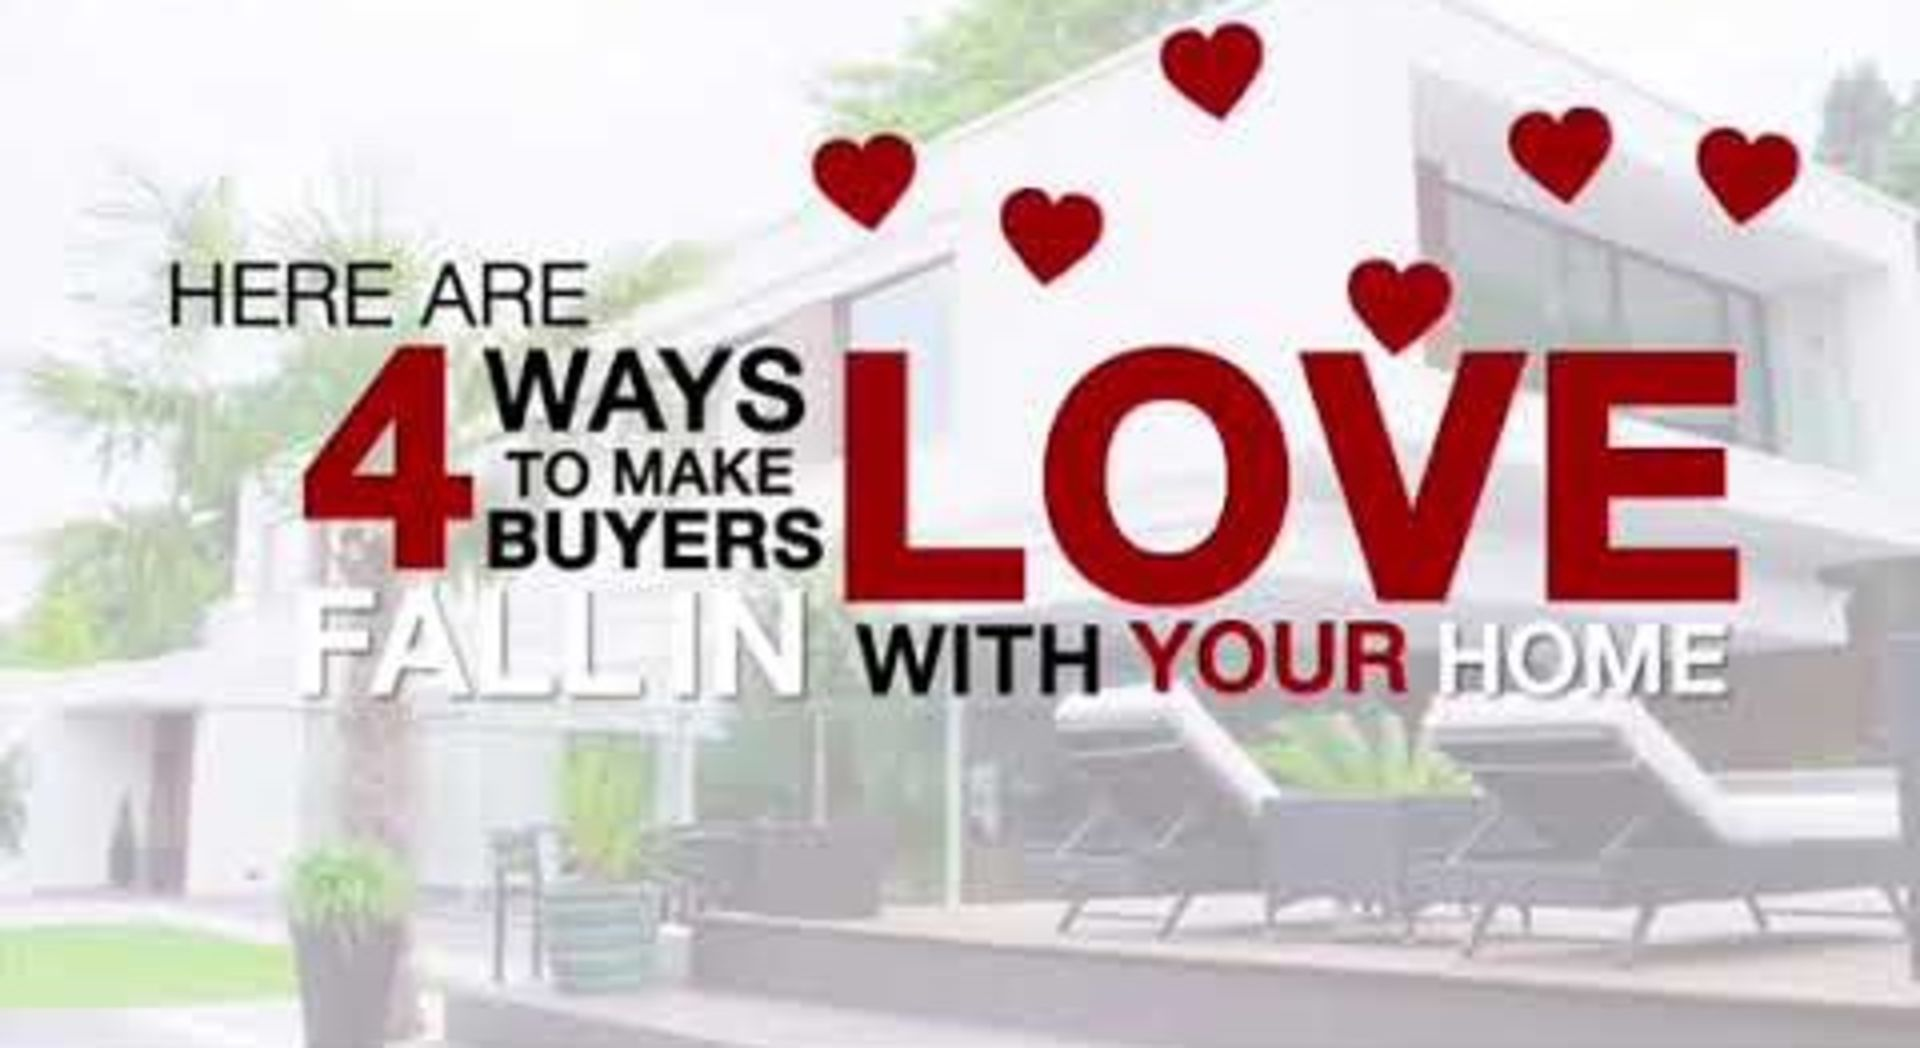 TIPS on how to make a Buyer fall in LOVE with your HOME